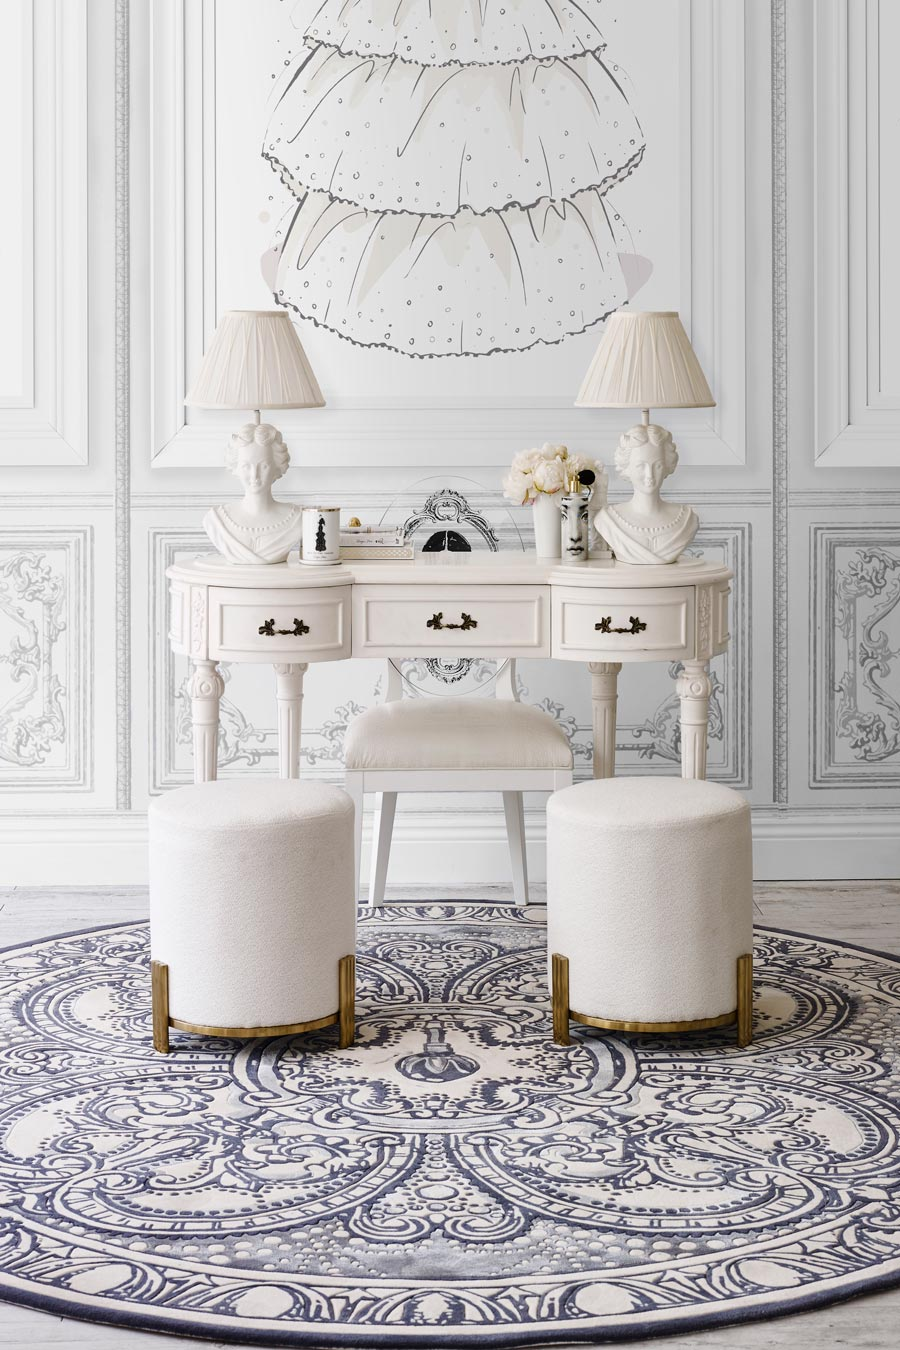 Styled image of round The Palace Ballroom rug by Megan Hess in blue colour